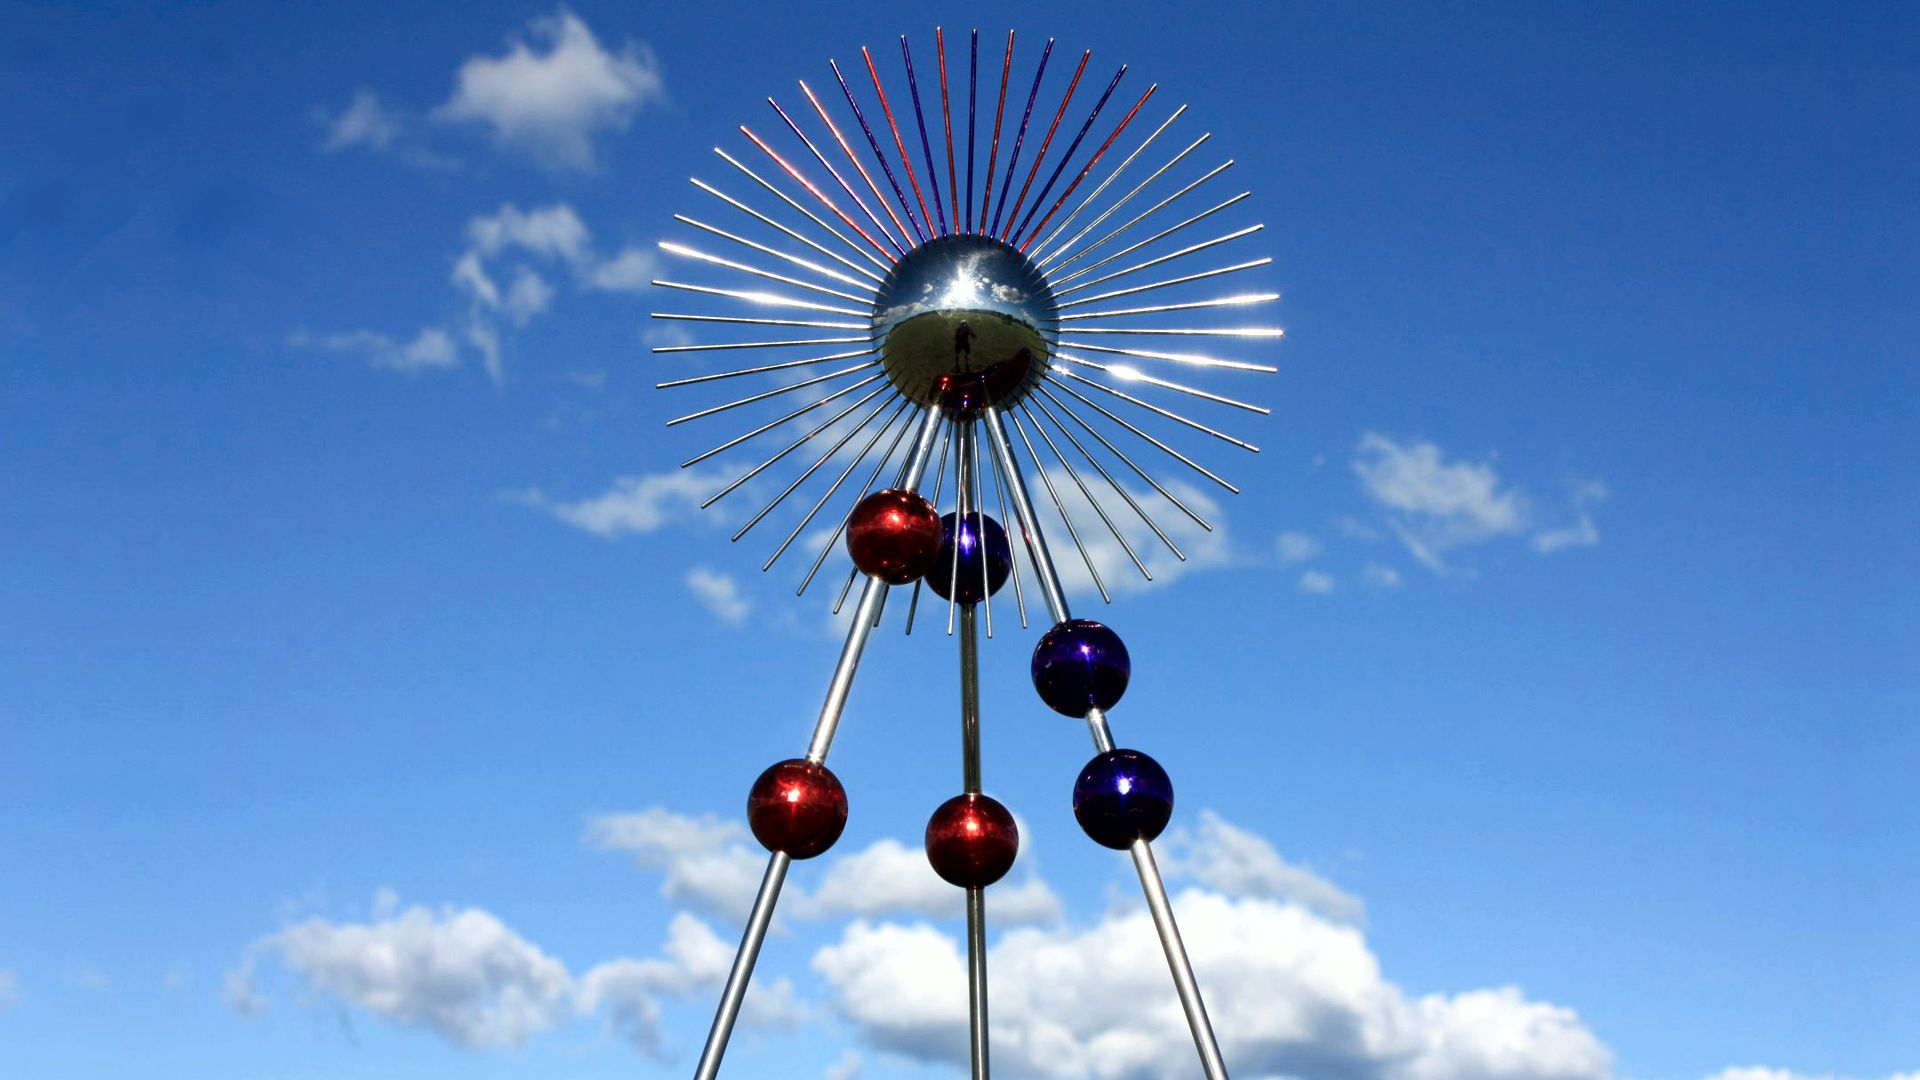 Sky and Light Sculpture USA by Hans-Leo Peters 2019